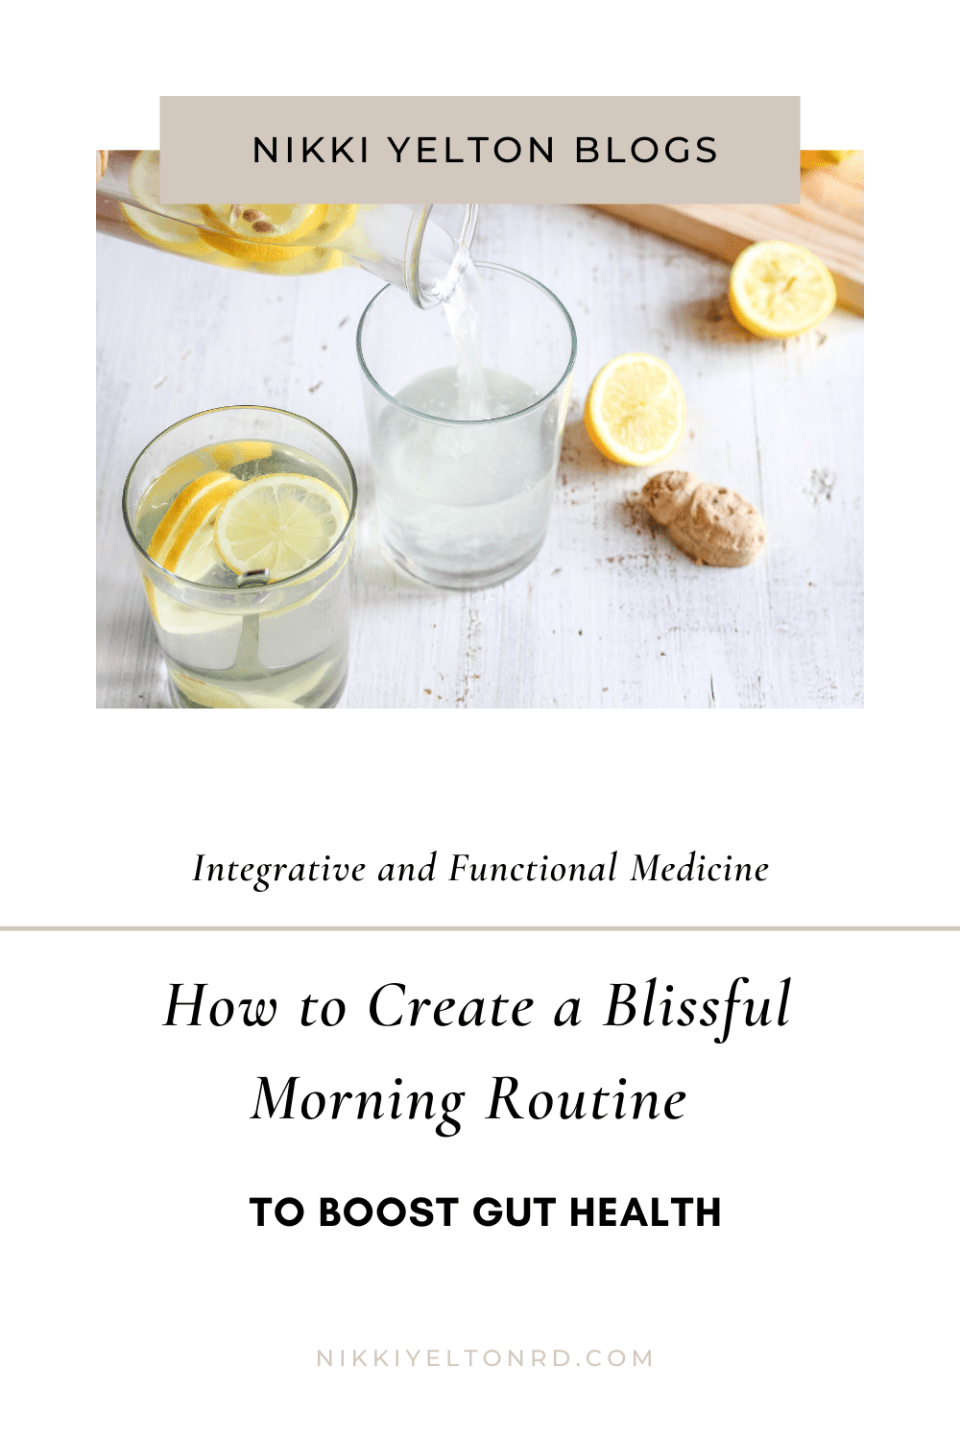 How to create a blissful morning routine to boost gut health